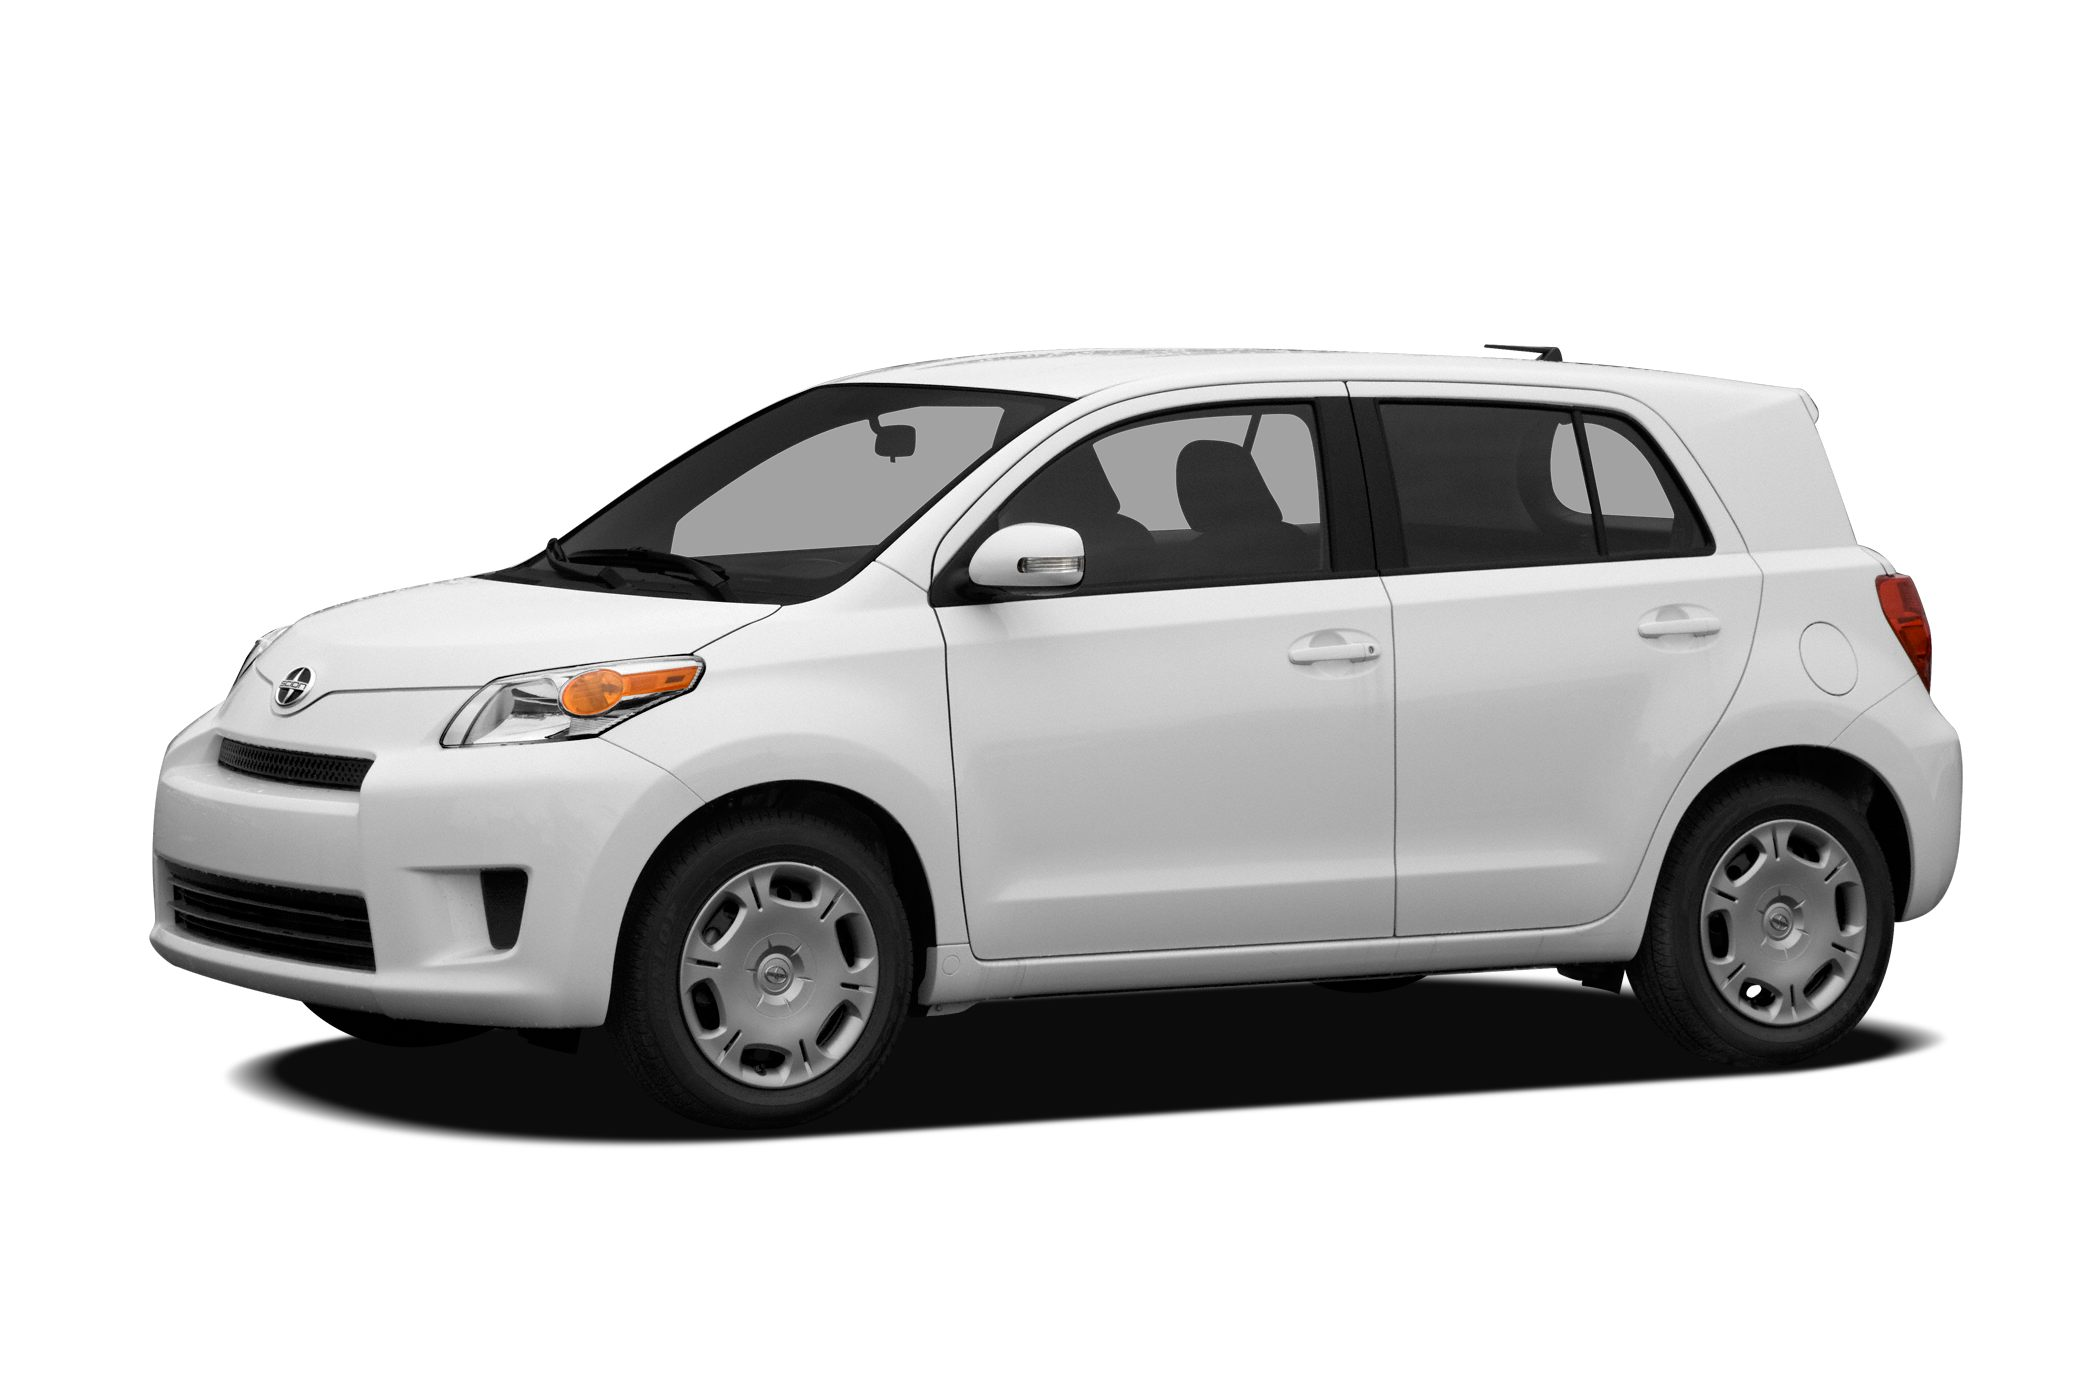 2012 Scion XD Base Hatchback for sale in Savannah for $15,991 with 27,308 miles.